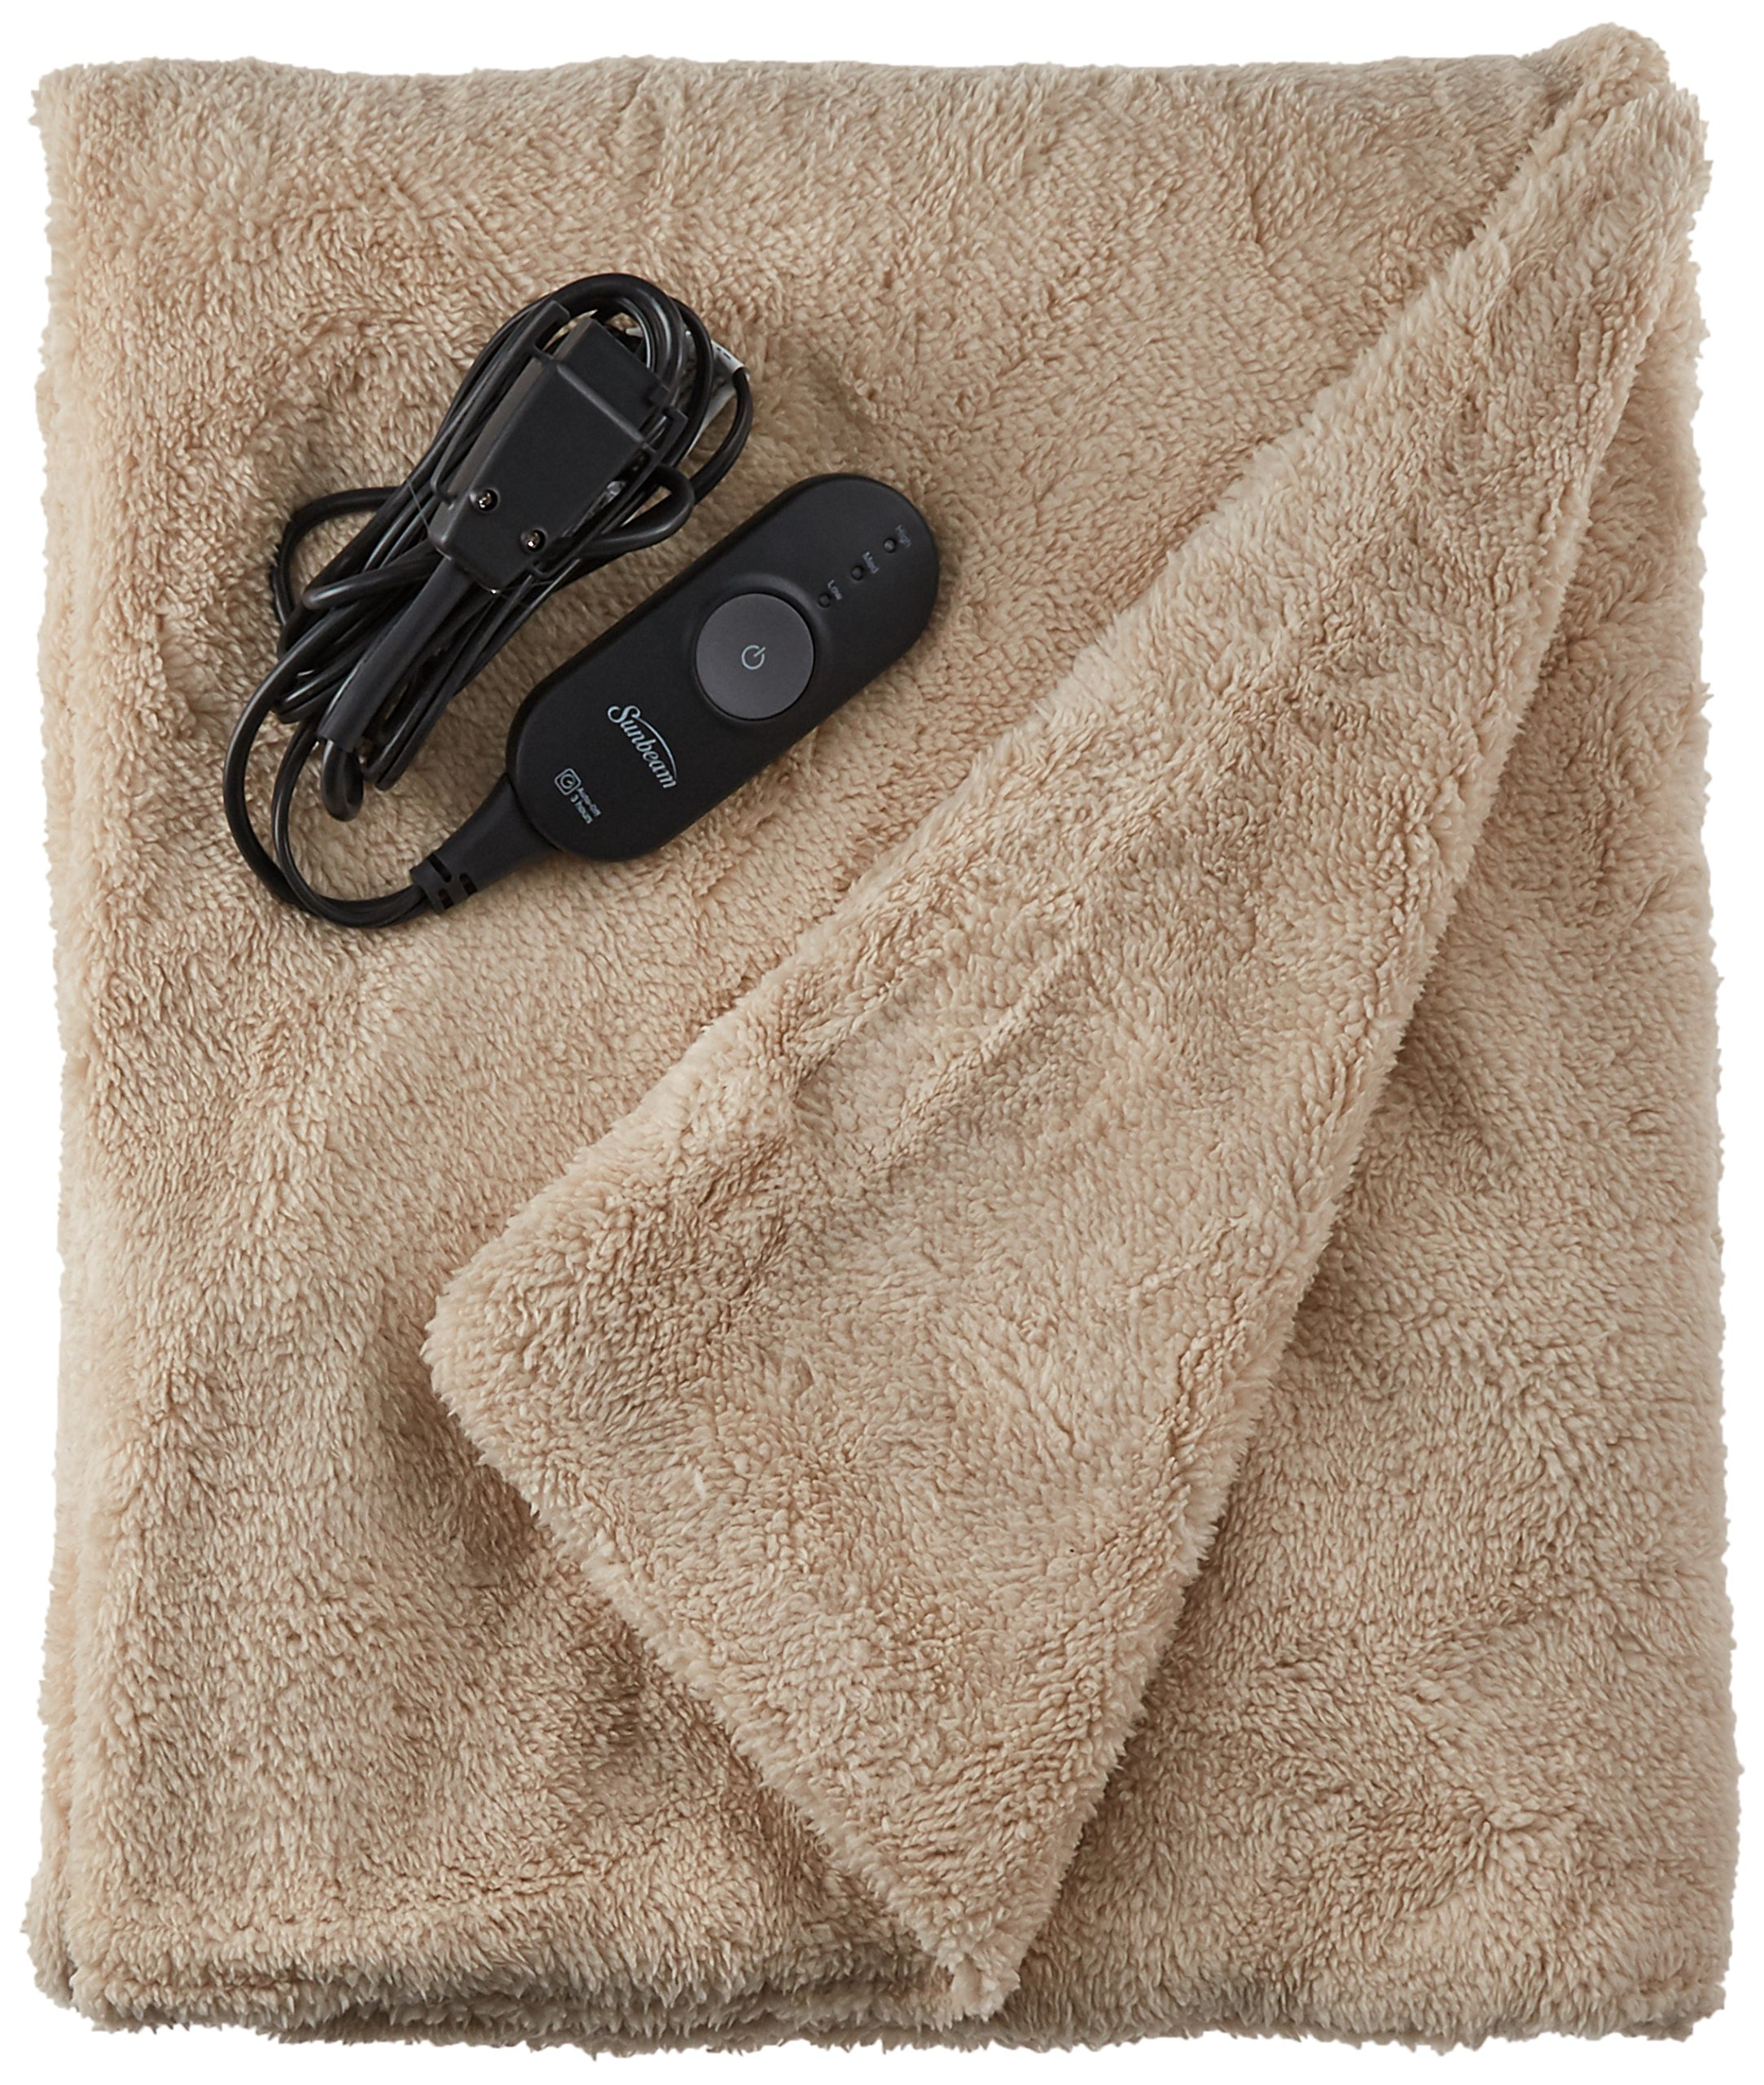 Sunbeam Heated Throw Blanket | LoftTec, 3 Heat Settings, Sand - TSL8TS-R783-31A00 - 3 heat settings 3 hour auto shut off Machine washable and dryer safe - blankets-throws, bedroom-sheets-comforters, bedroom - A1A30LQgcLL -